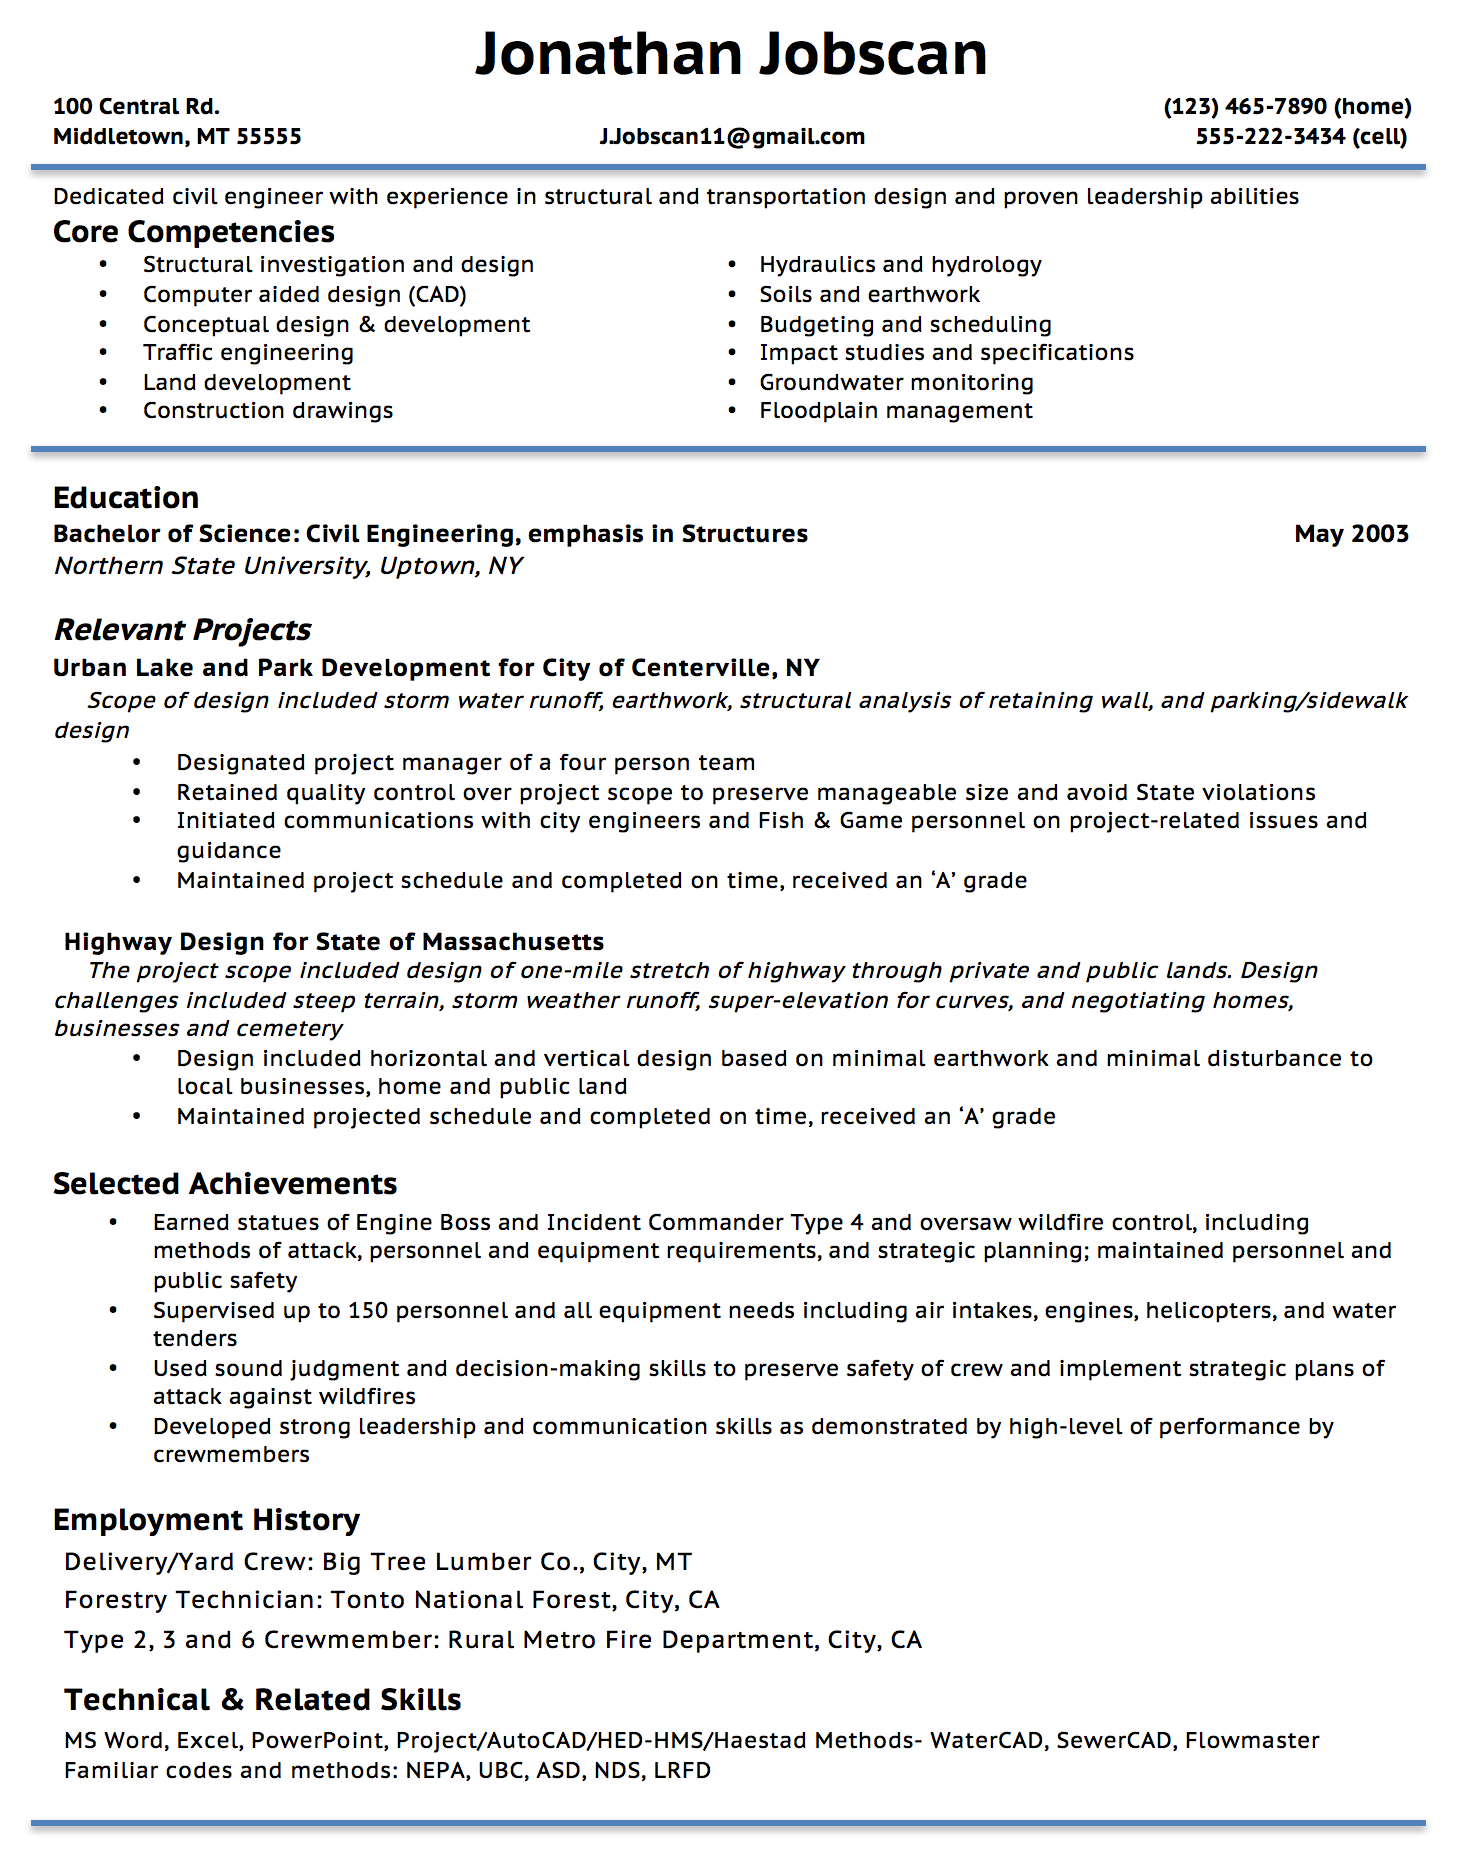 Opposenewapstandardsus  Nice Resume Writing Guide  Jobscan With Interesting Example Of A Functional Resume Format With Adorable Resume College Also Charge Nurse Resume In Addition Resume  And Sample Entry Level Resume As Well As Writing A Resume Summary Additionally Resume Designer From Jobscanco With Opposenewapstandardsus  Interesting Resume Writing Guide  Jobscan With Adorable Example Of A Functional Resume Format And Nice Resume College Also Charge Nurse Resume In Addition Resume  From Jobscanco